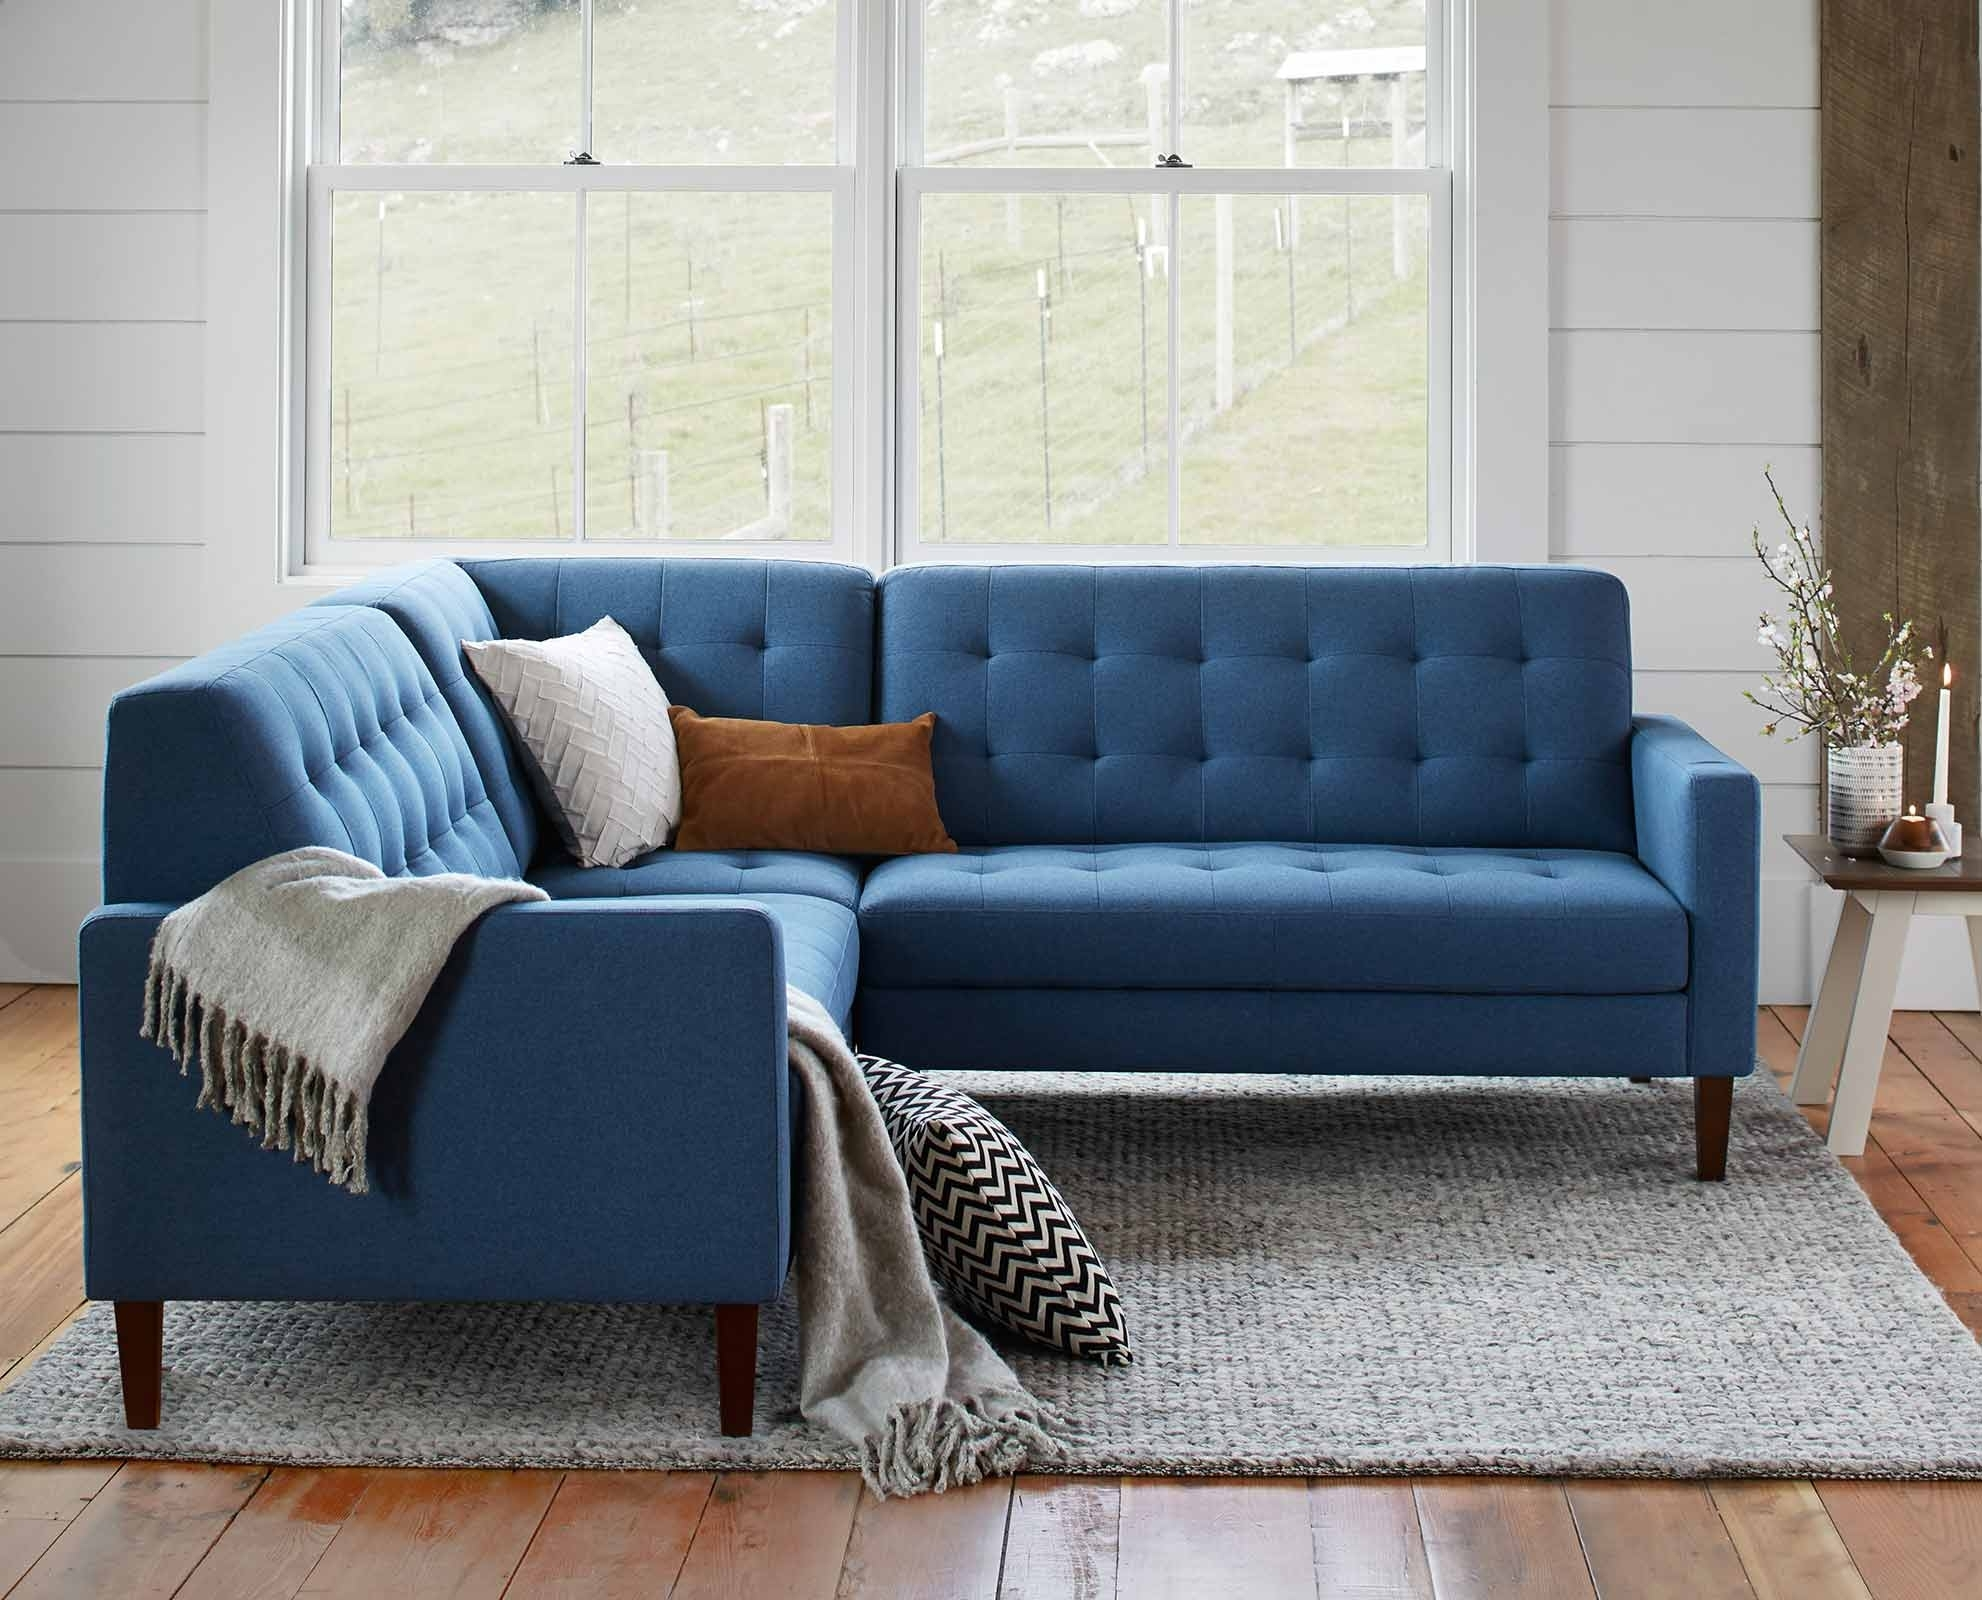 The Camilla Sectional From Scandinavian Designs - Adopt A Adopt A with regard to Dania Sectional Sofas (Image 10 of 10)